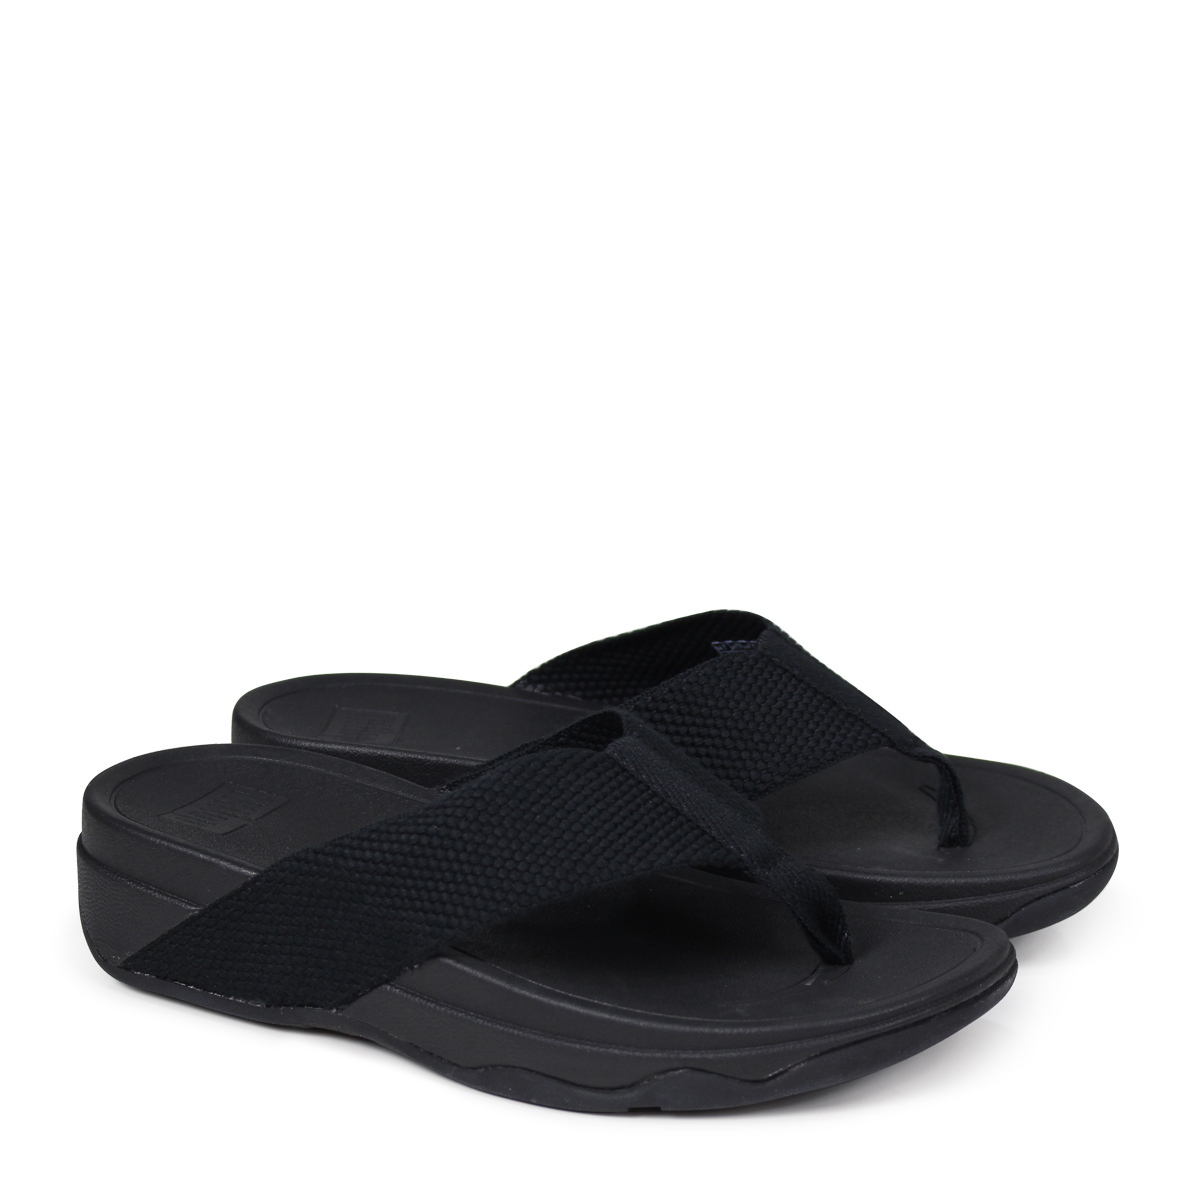 272395273 FitFlop SURFA TOE POST SANDALS sandals fitting FLOP surfer Lady s H84 black   4 4 Shinnyu load   184